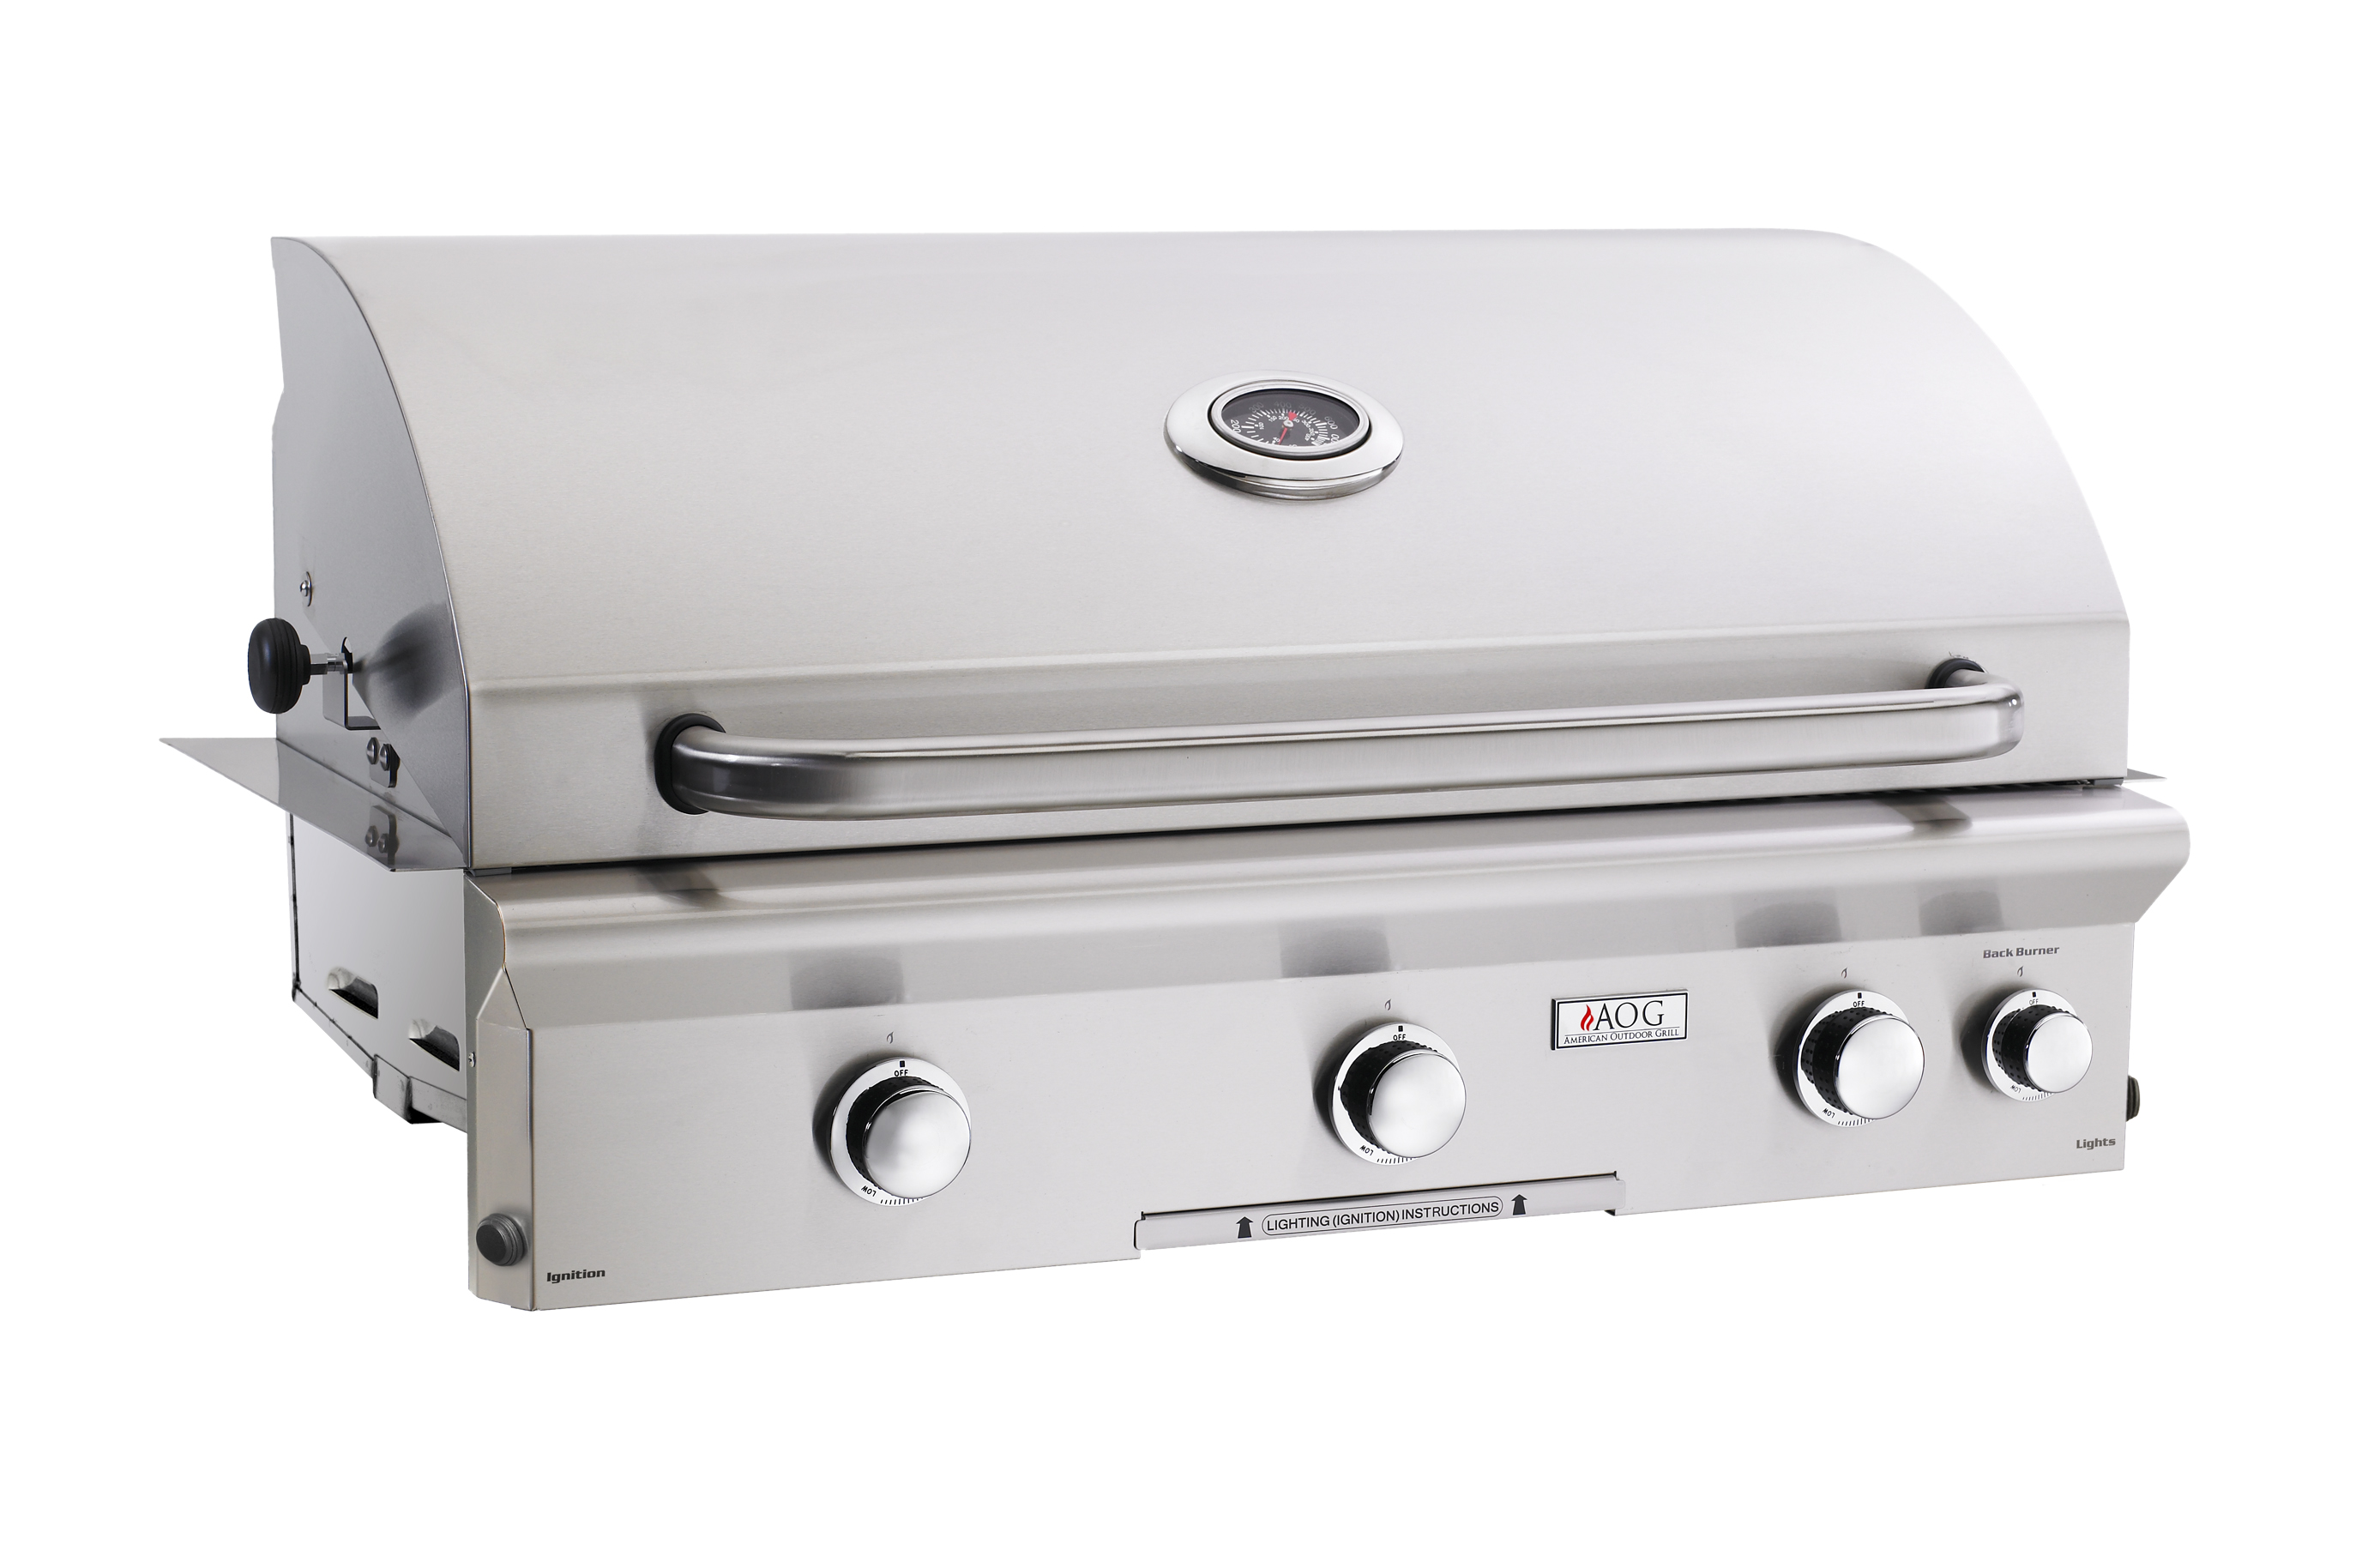 aog-36nbl-36-l-series-built-in-grill.jpg